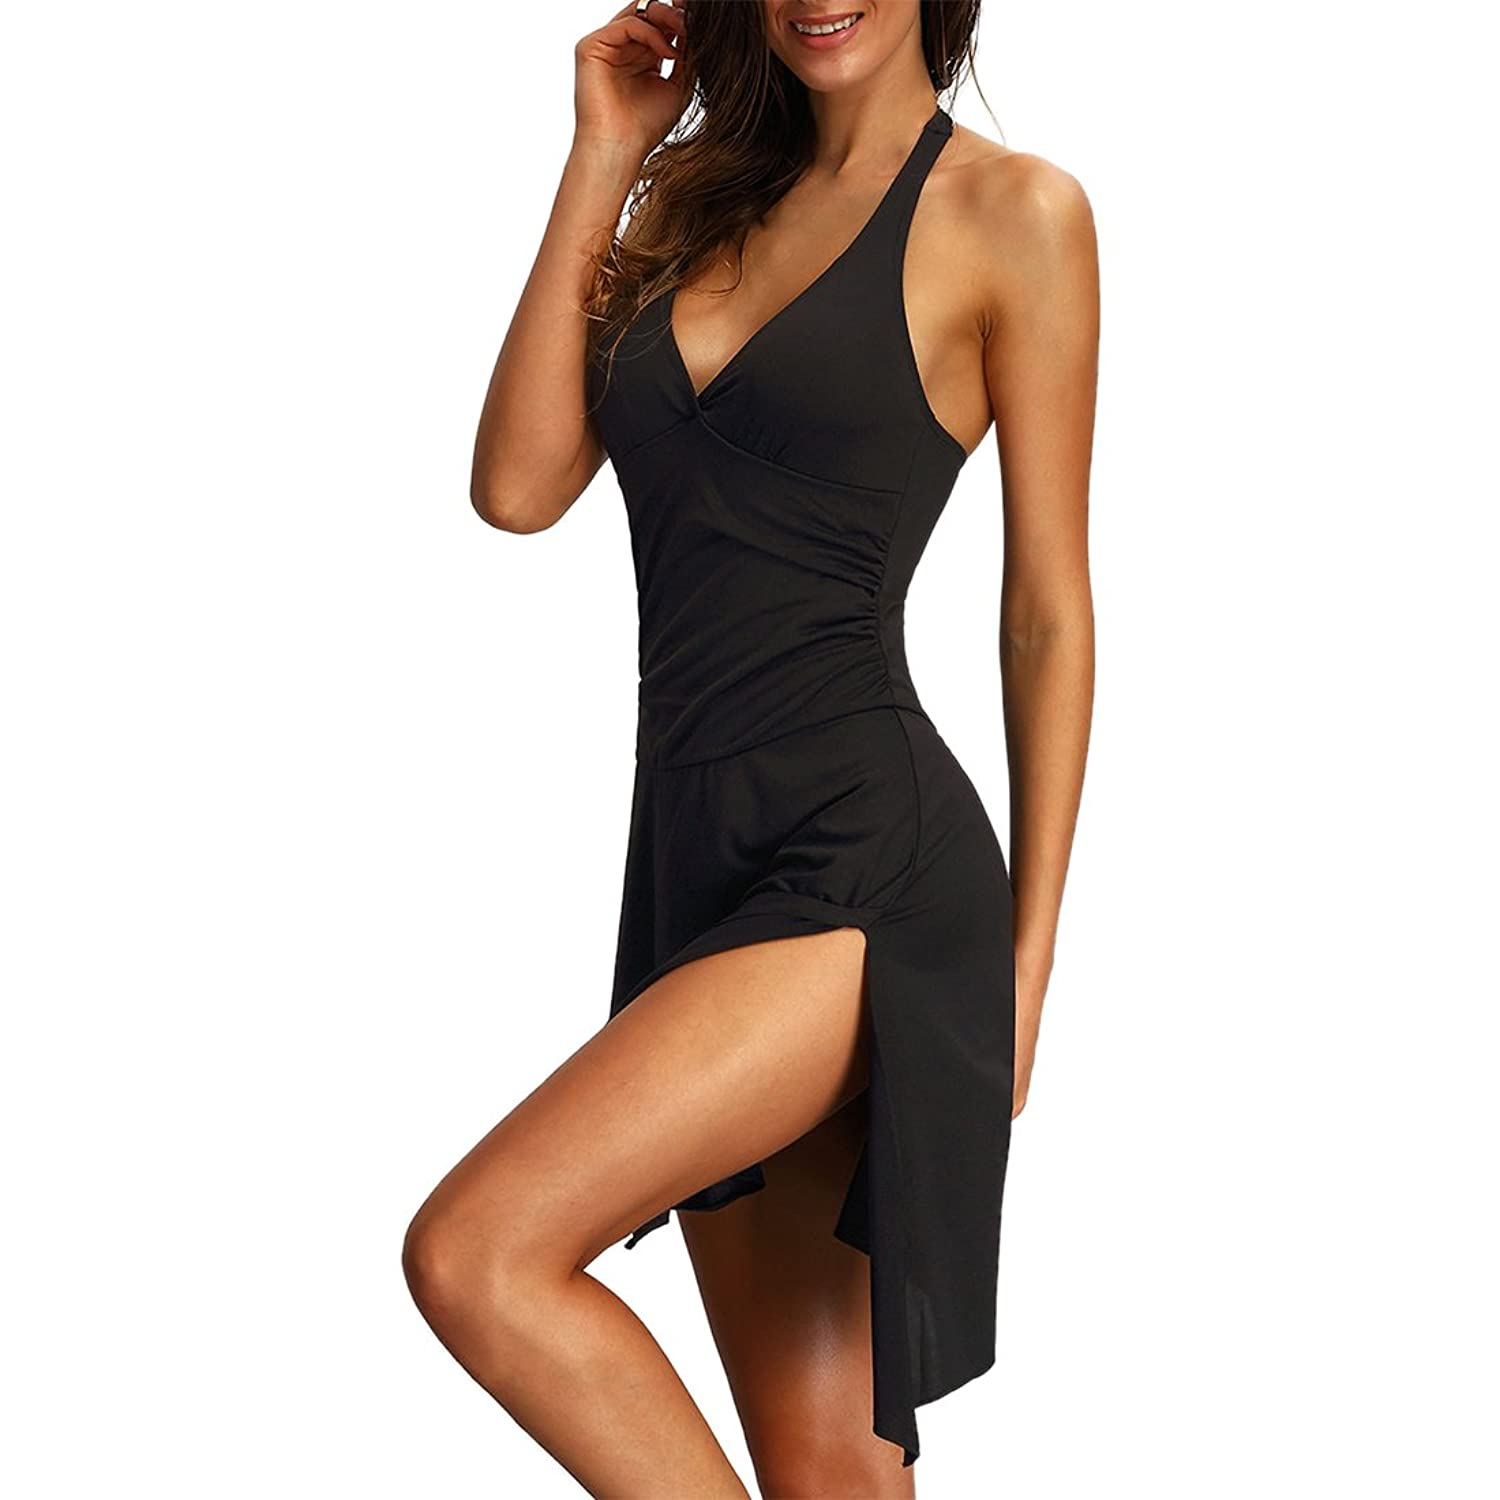 Partiss Women's Sexy V-neck Backless Dress